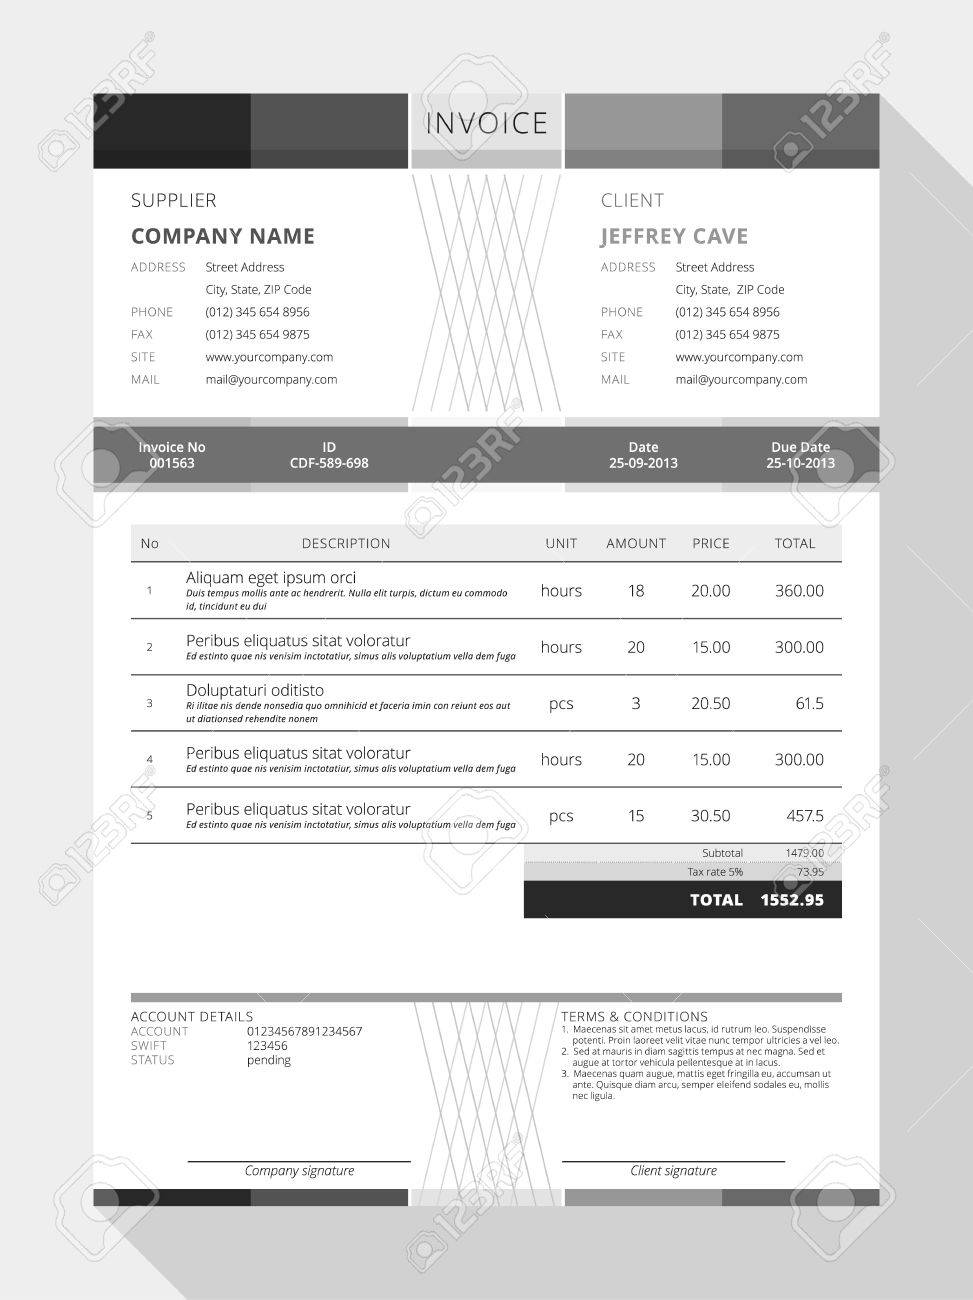 Angkajituus  Unique Design An Invoice  Professional Graphic Design Invoice  With Interesting Vector Customizable Invoice Form Template Design Vector   Design An Invoice With Easy On The Eye Iphone App For Receipts Also Digital Receipt Scanner In Addition Virginia Gross Receipts Tax And Track Receipt Number As Well As Receipts Pdf Additionally Create Online Receipt From Happytomco With Angkajituus  Interesting Design An Invoice  Professional Graphic Design Invoice  With Easy On The Eye Vector Customizable Invoice Form Template Design Vector   Design An Invoice And Unique Iphone App For Receipts Also Digital Receipt Scanner In Addition Virginia Gross Receipts Tax From Happytomco